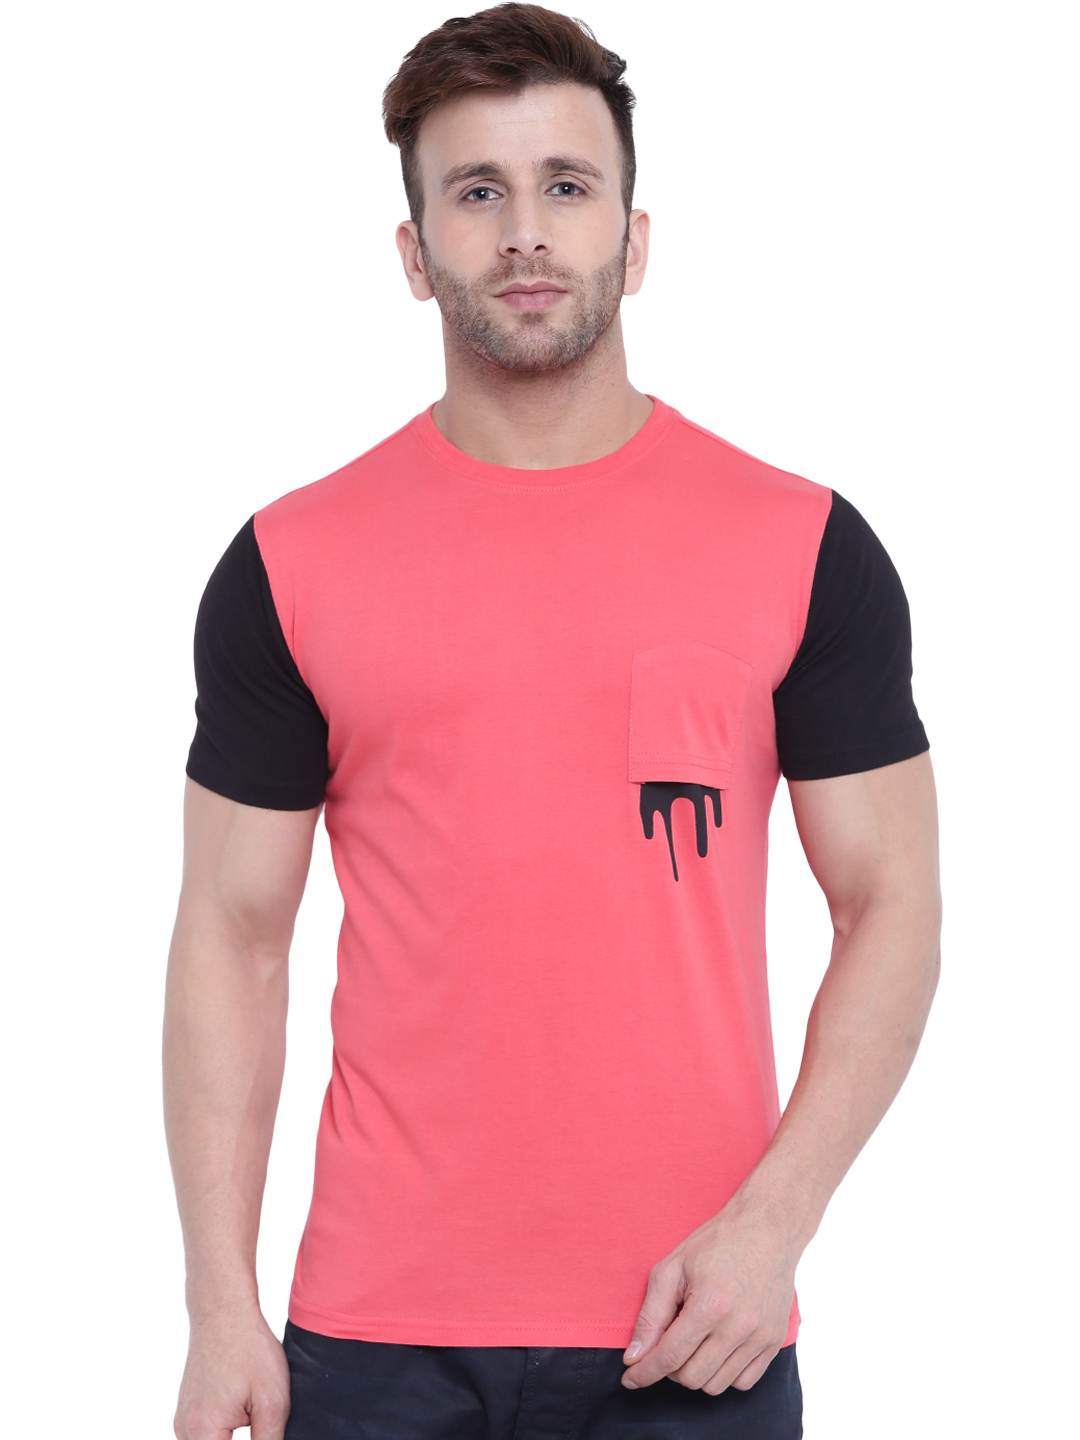 Gritstones Gritstones Coral/Black Paint Drop Printed  Round Neck T-Shirt